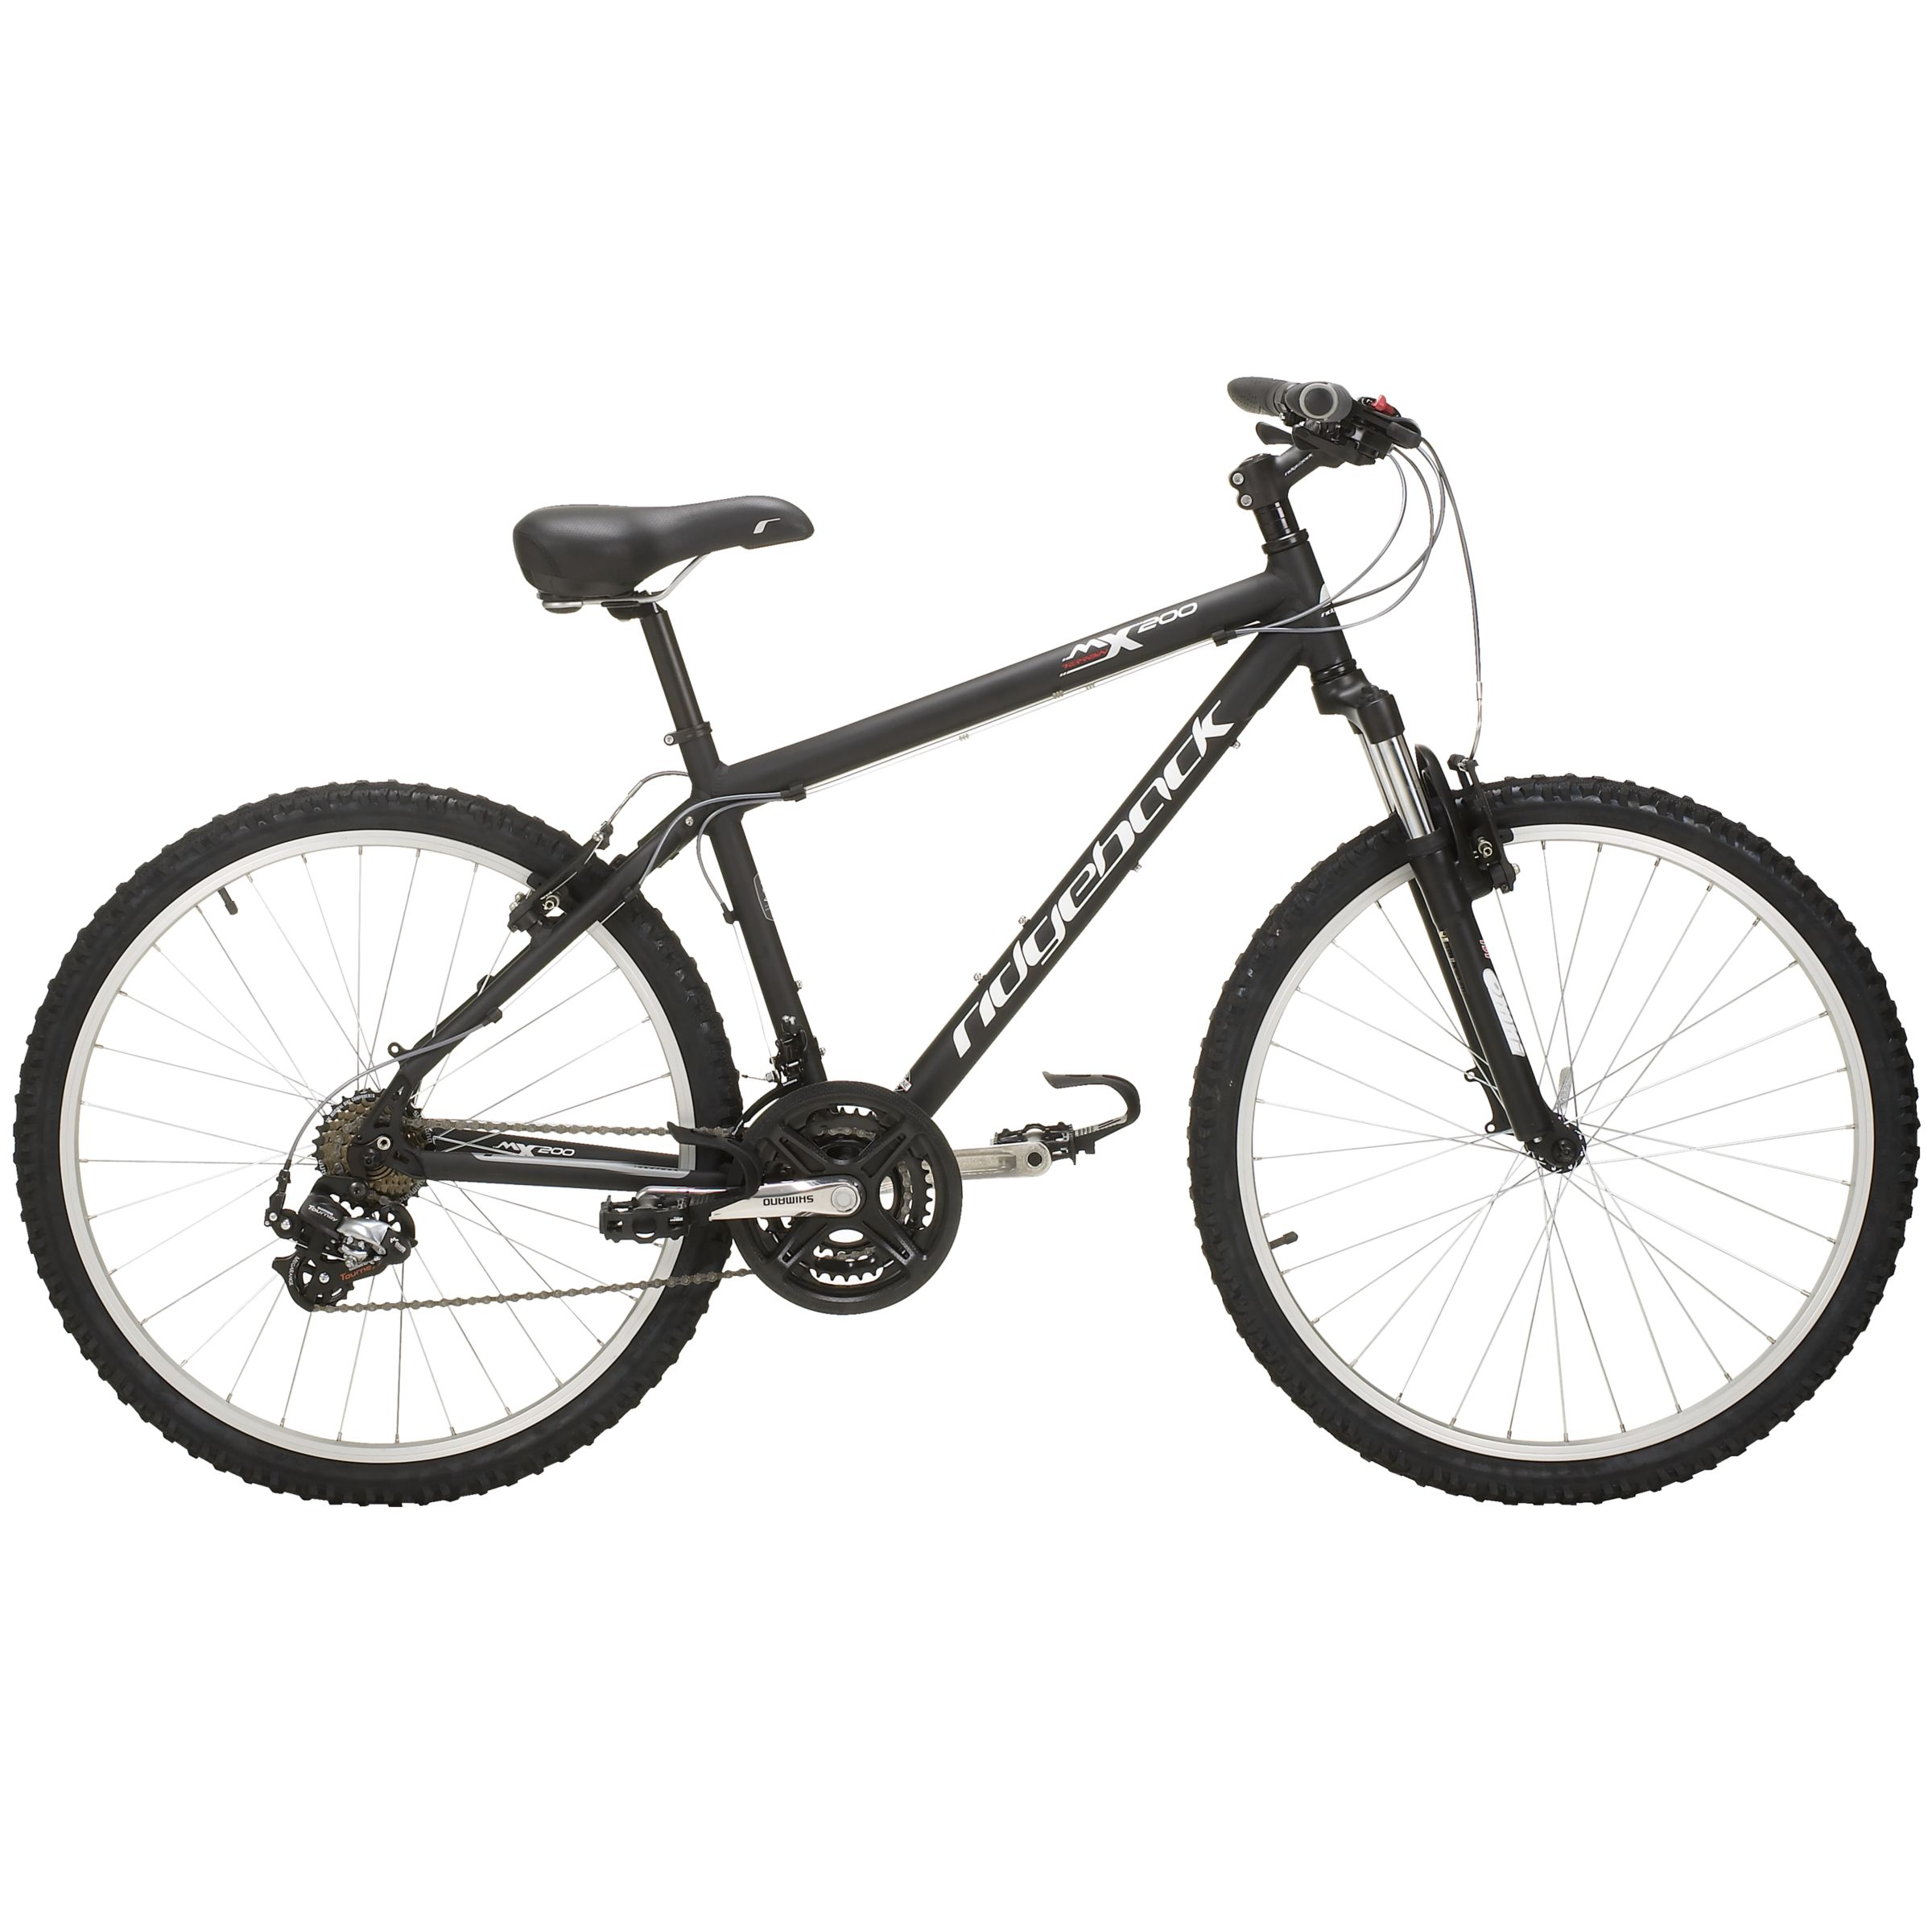 MX200 Mens Mountain Bike with